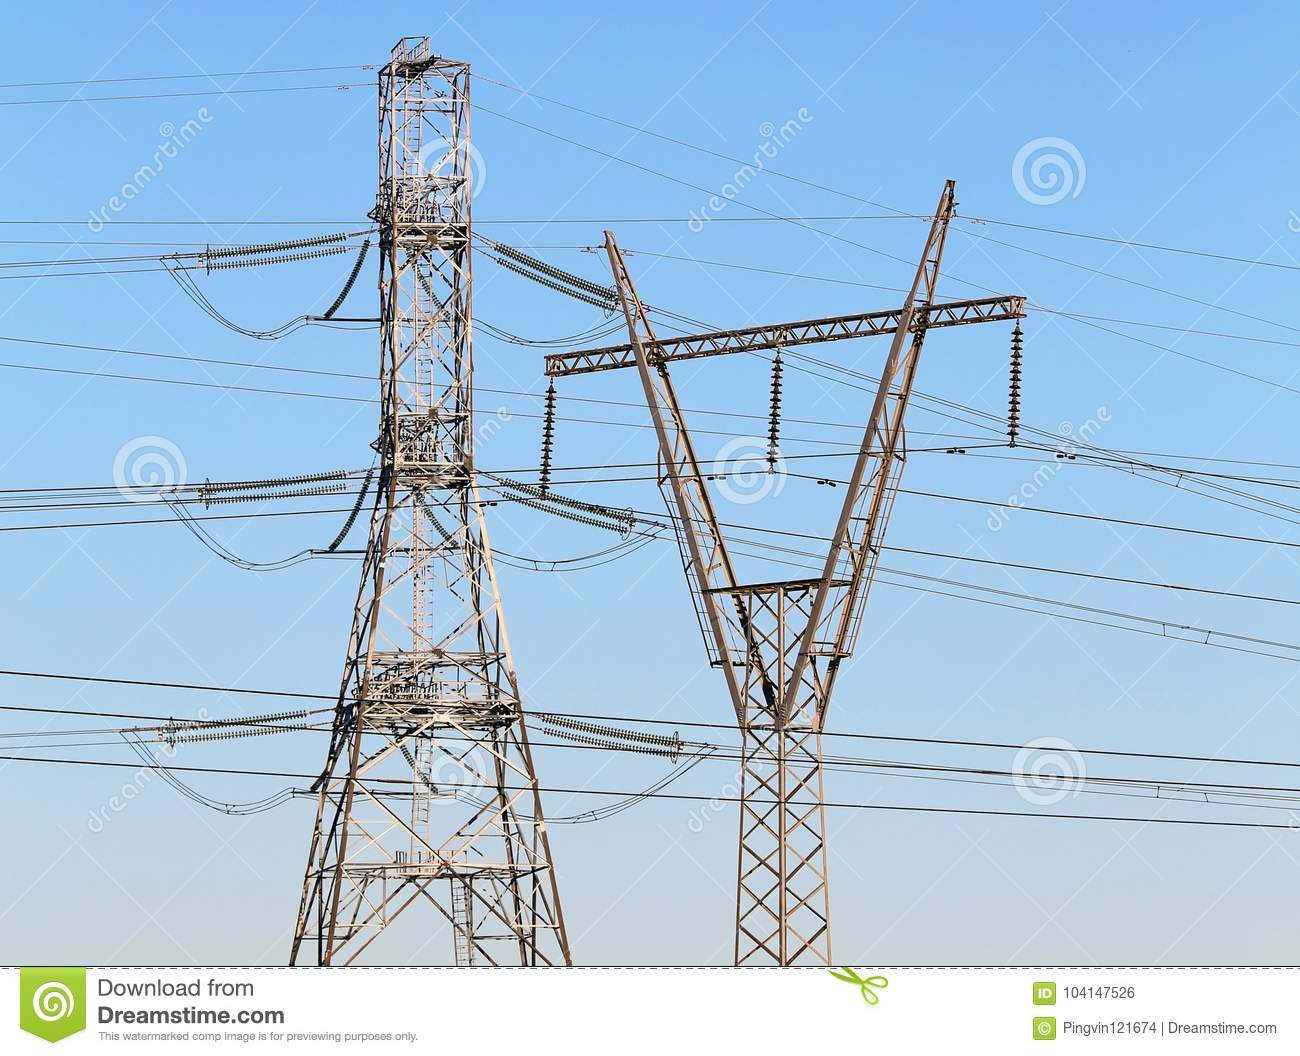 High Voltage Wires | High Voltage Power Transmission Line Stock Photo Image Of Electric